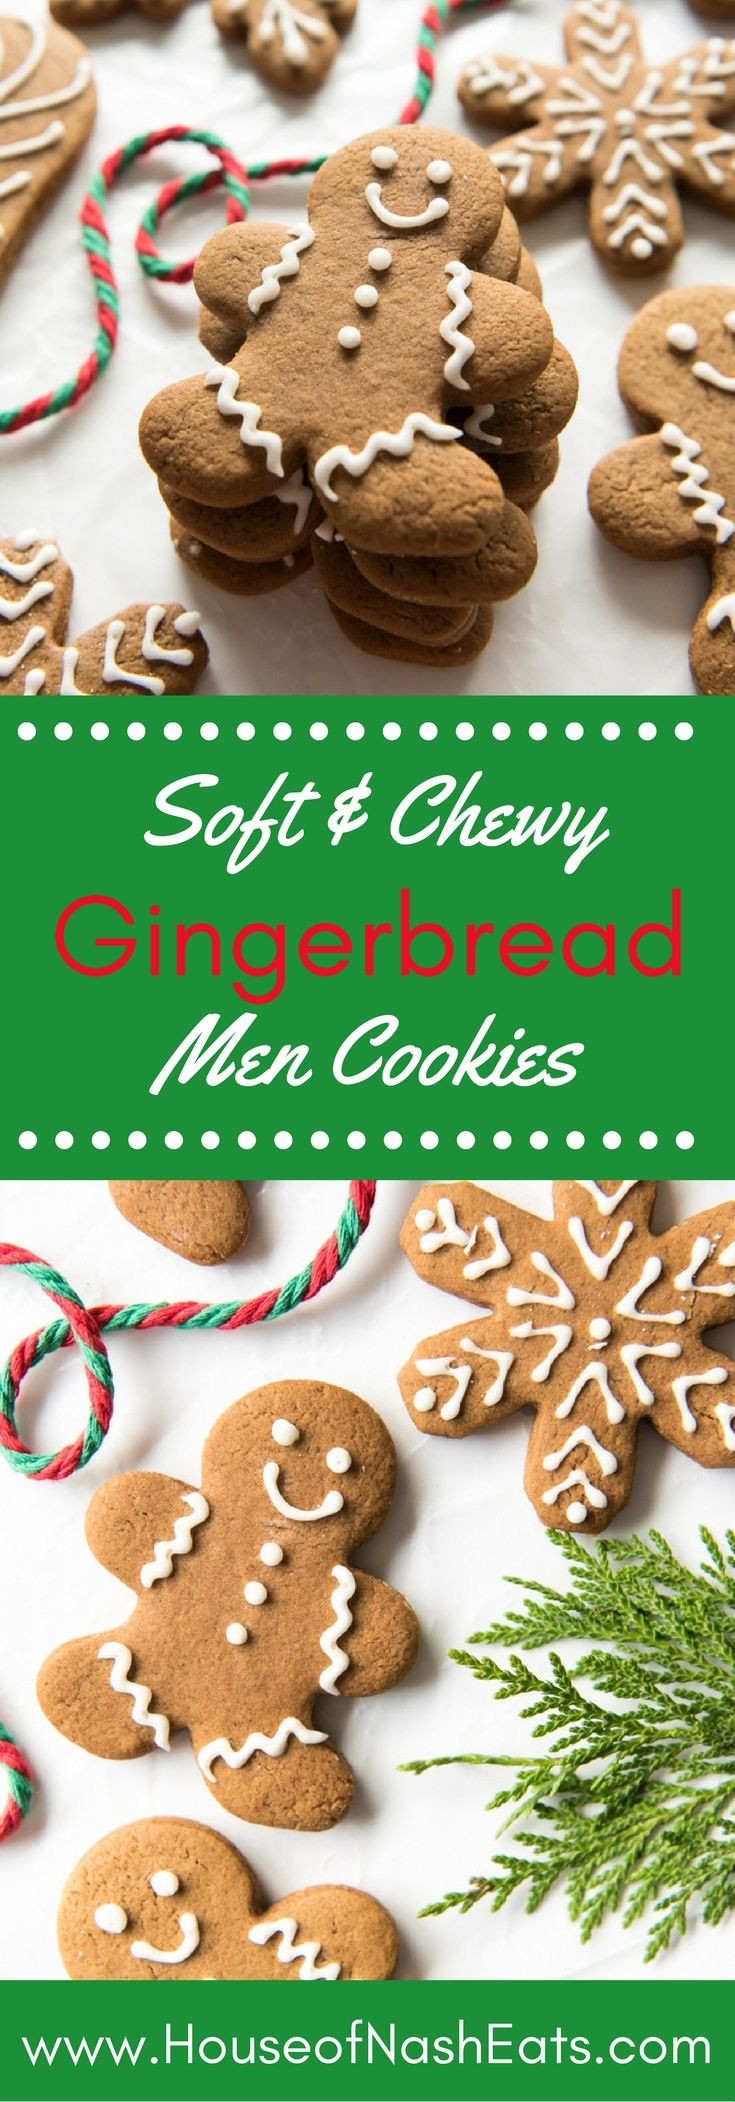 Chewy Christmas Cookies  Soft & Chewy Gingerbread Men Cookies Recipe